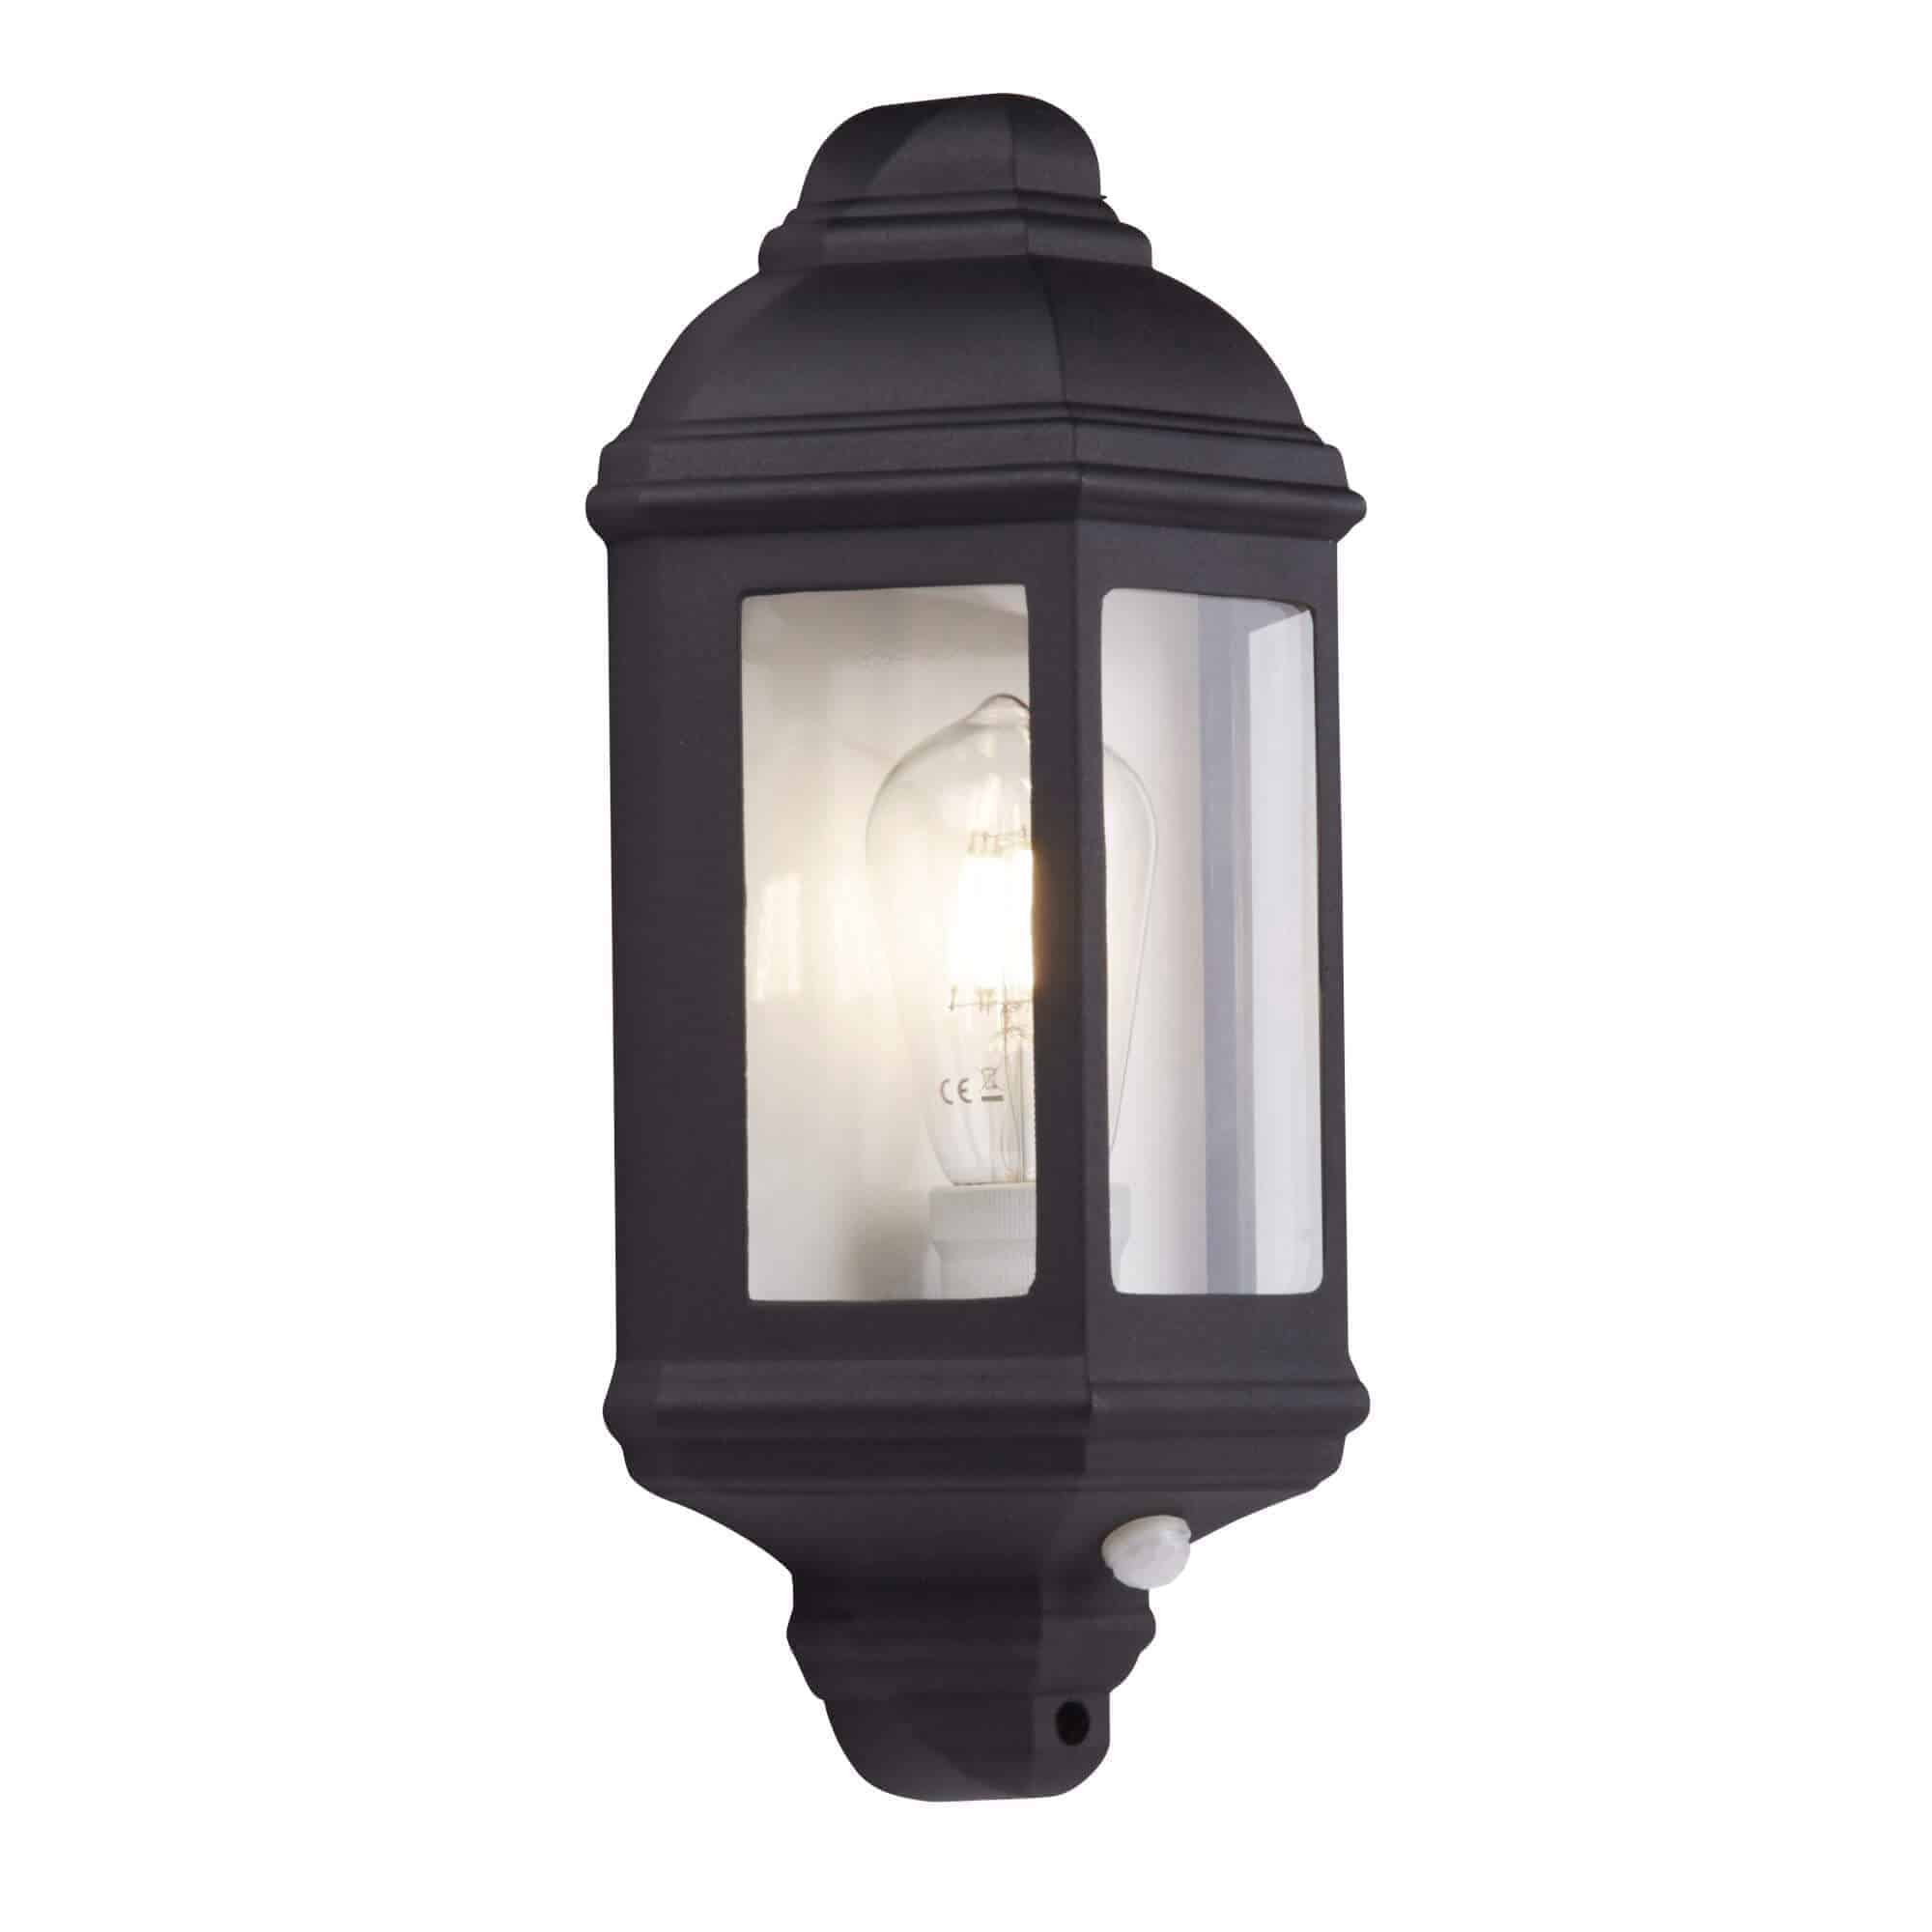 280BK-PIR – Searchlight Outdoor & Porch Wall Light Black Flush IP44